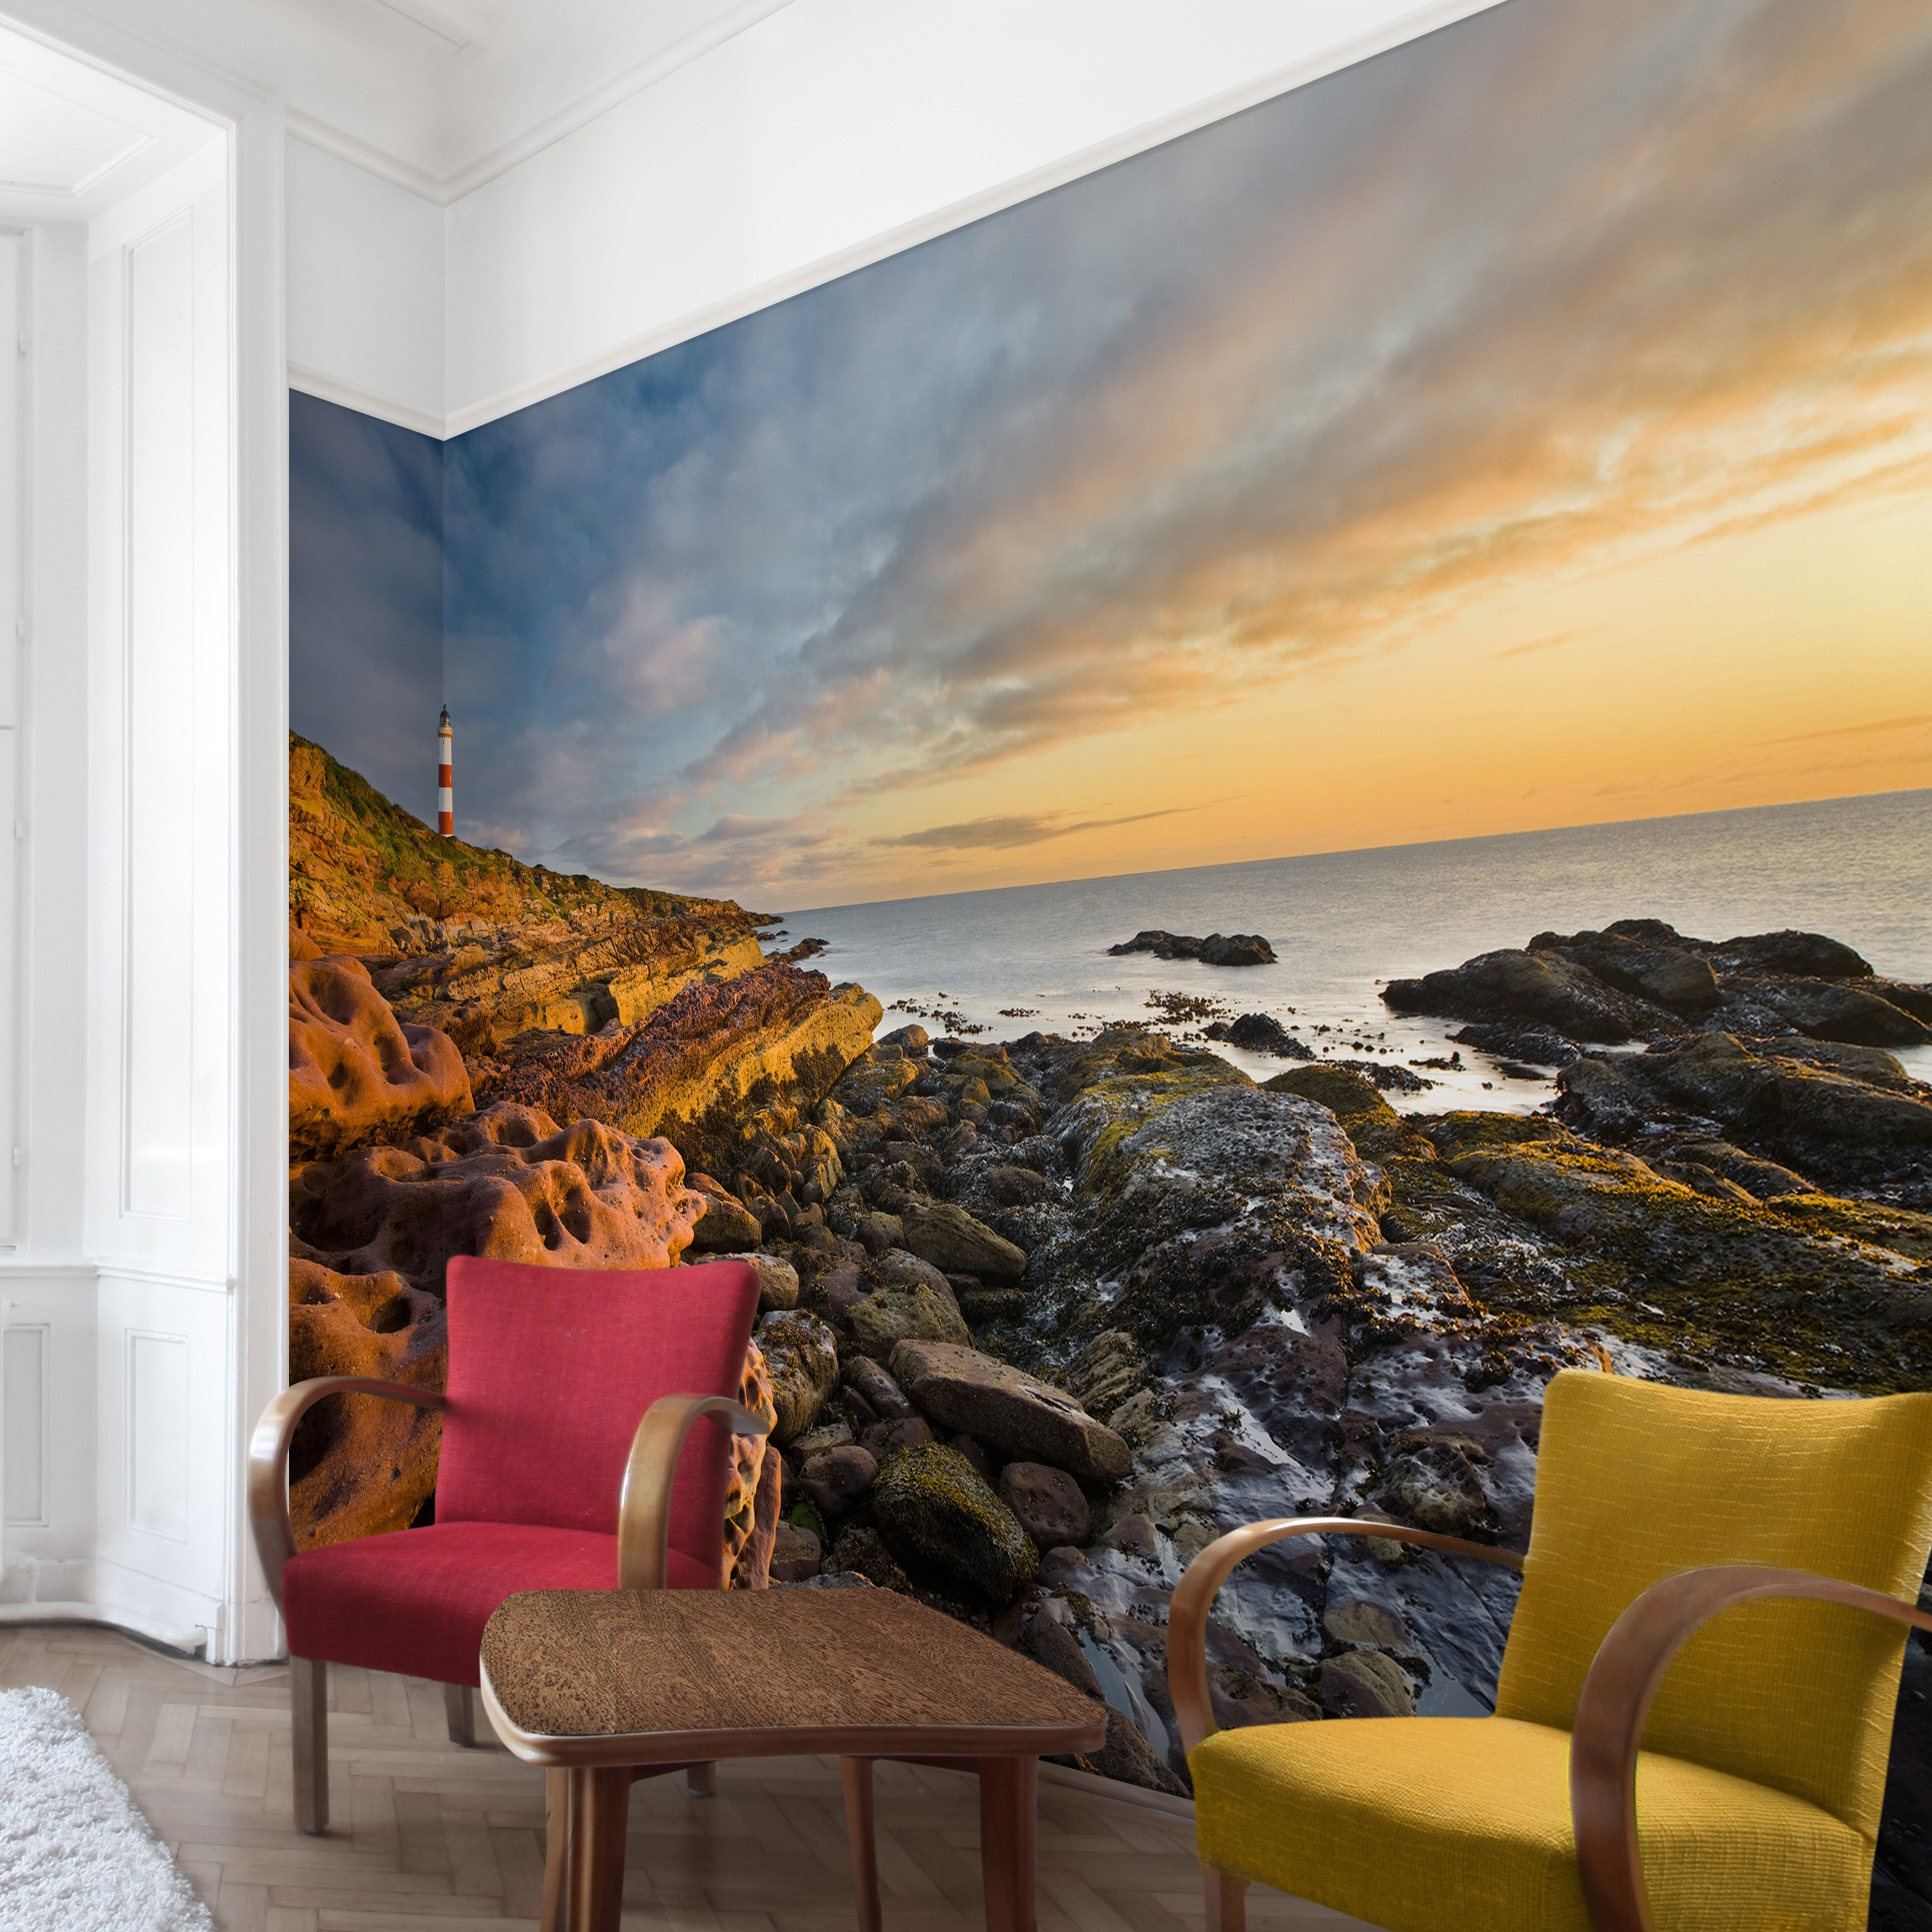 strand fototapete selbstklebend tarbat ness leuchtturm und sonnenuntergang am meer. Black Bedroom Furniture Sets. Home Design Ideas